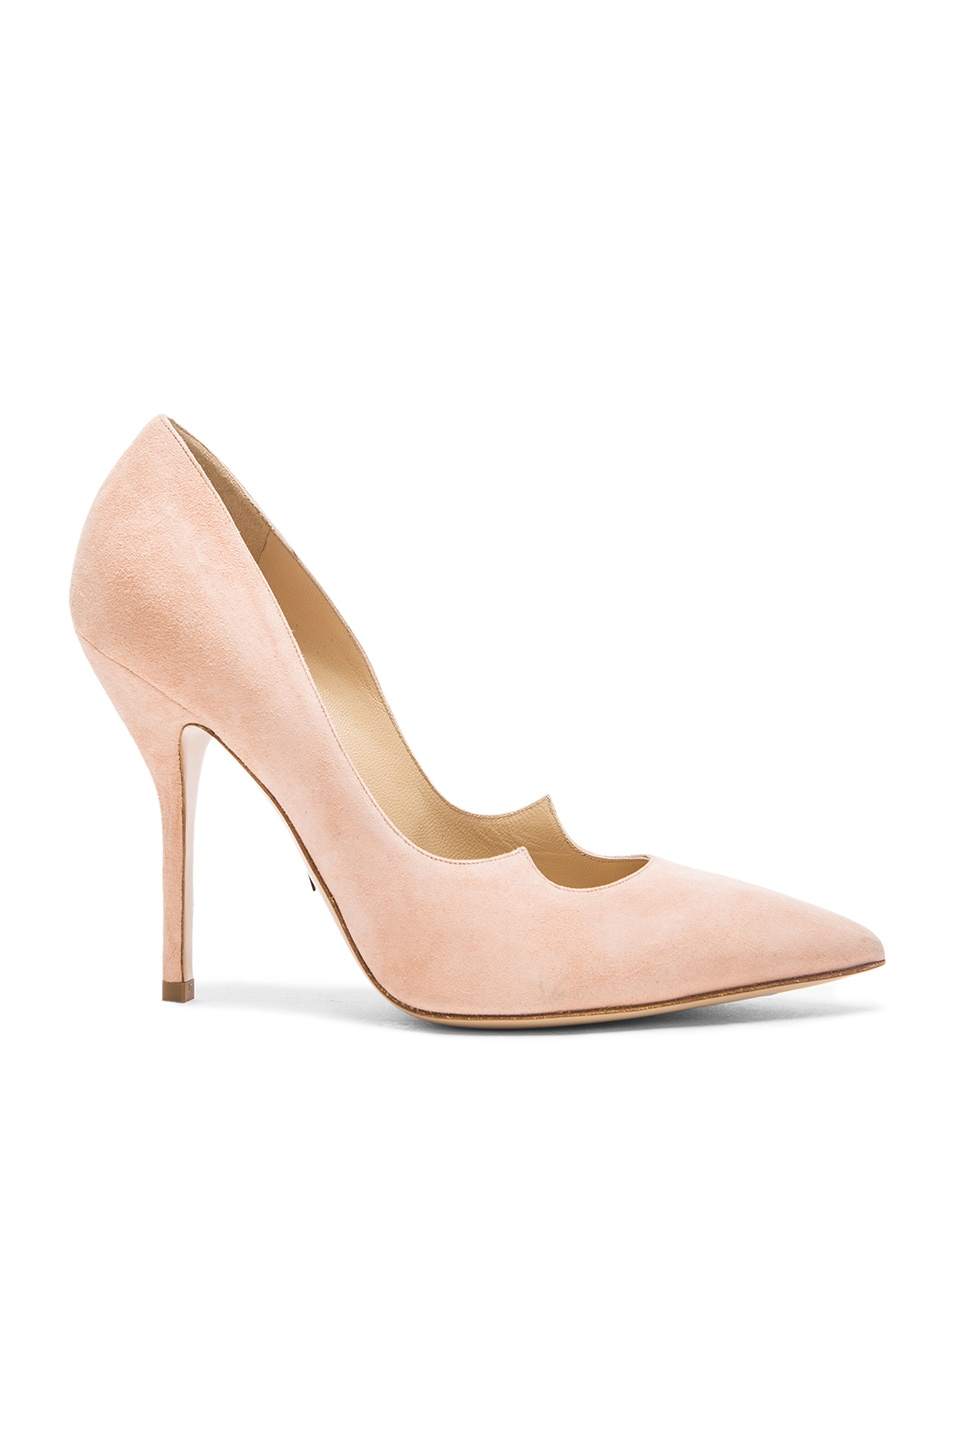 Image 1 of Paul Andrew Zenadia Heel in Blush